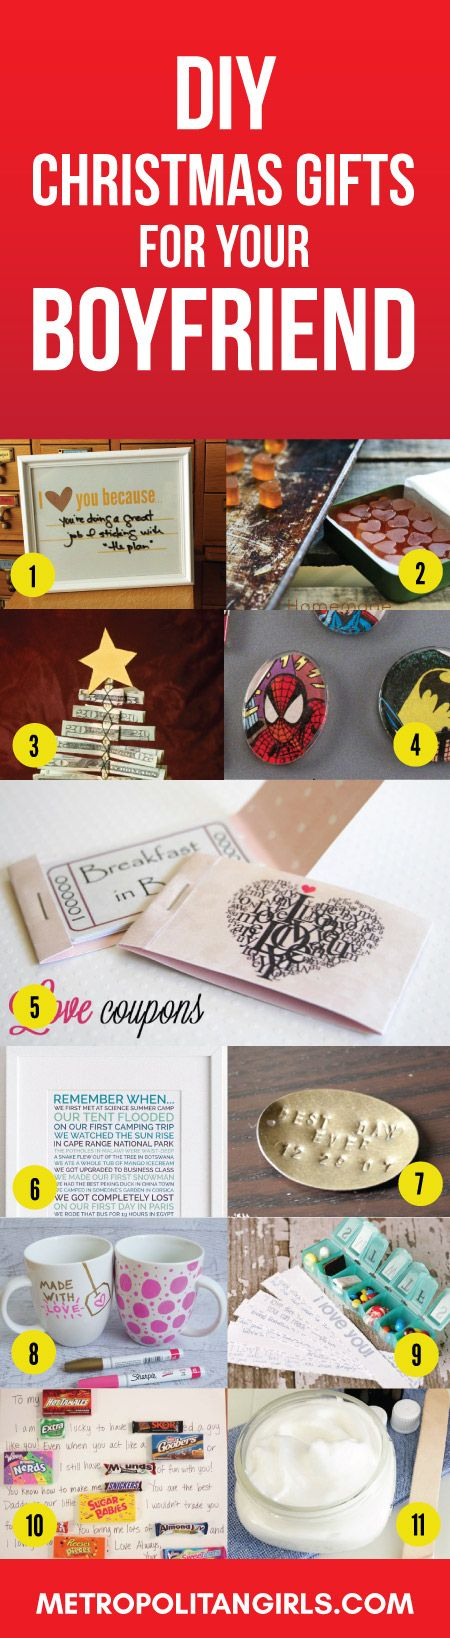 Christmas Gift Ideas For Boyfriend 2018 Christmas Gifts 2018